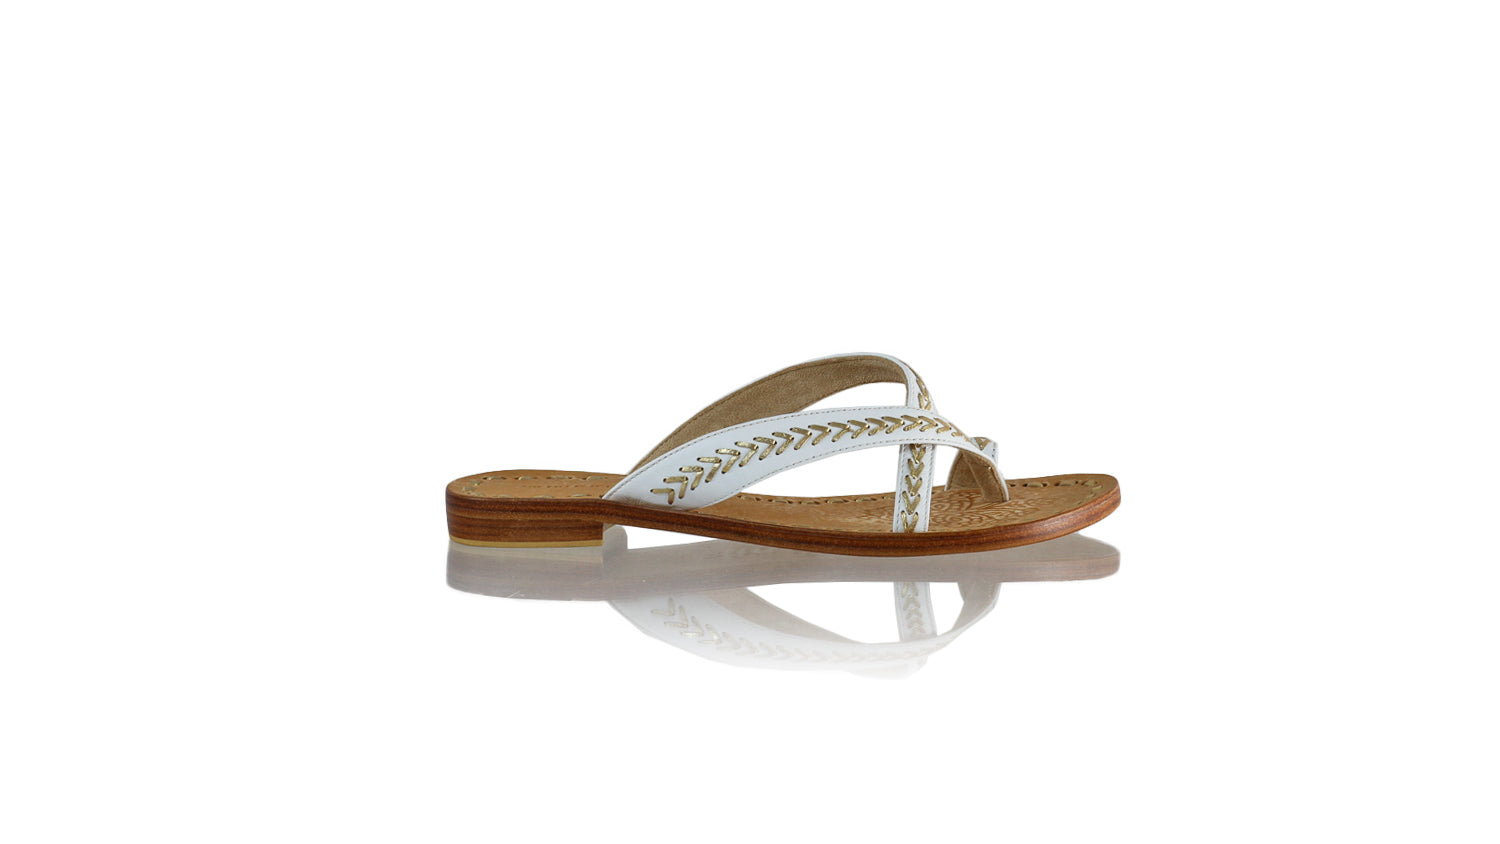 Leather-shoes-Romance Without Strap 20mm Flat - White & Gold-sandals flat-NILUH DJELANTIK-NILUH DJELANTIK